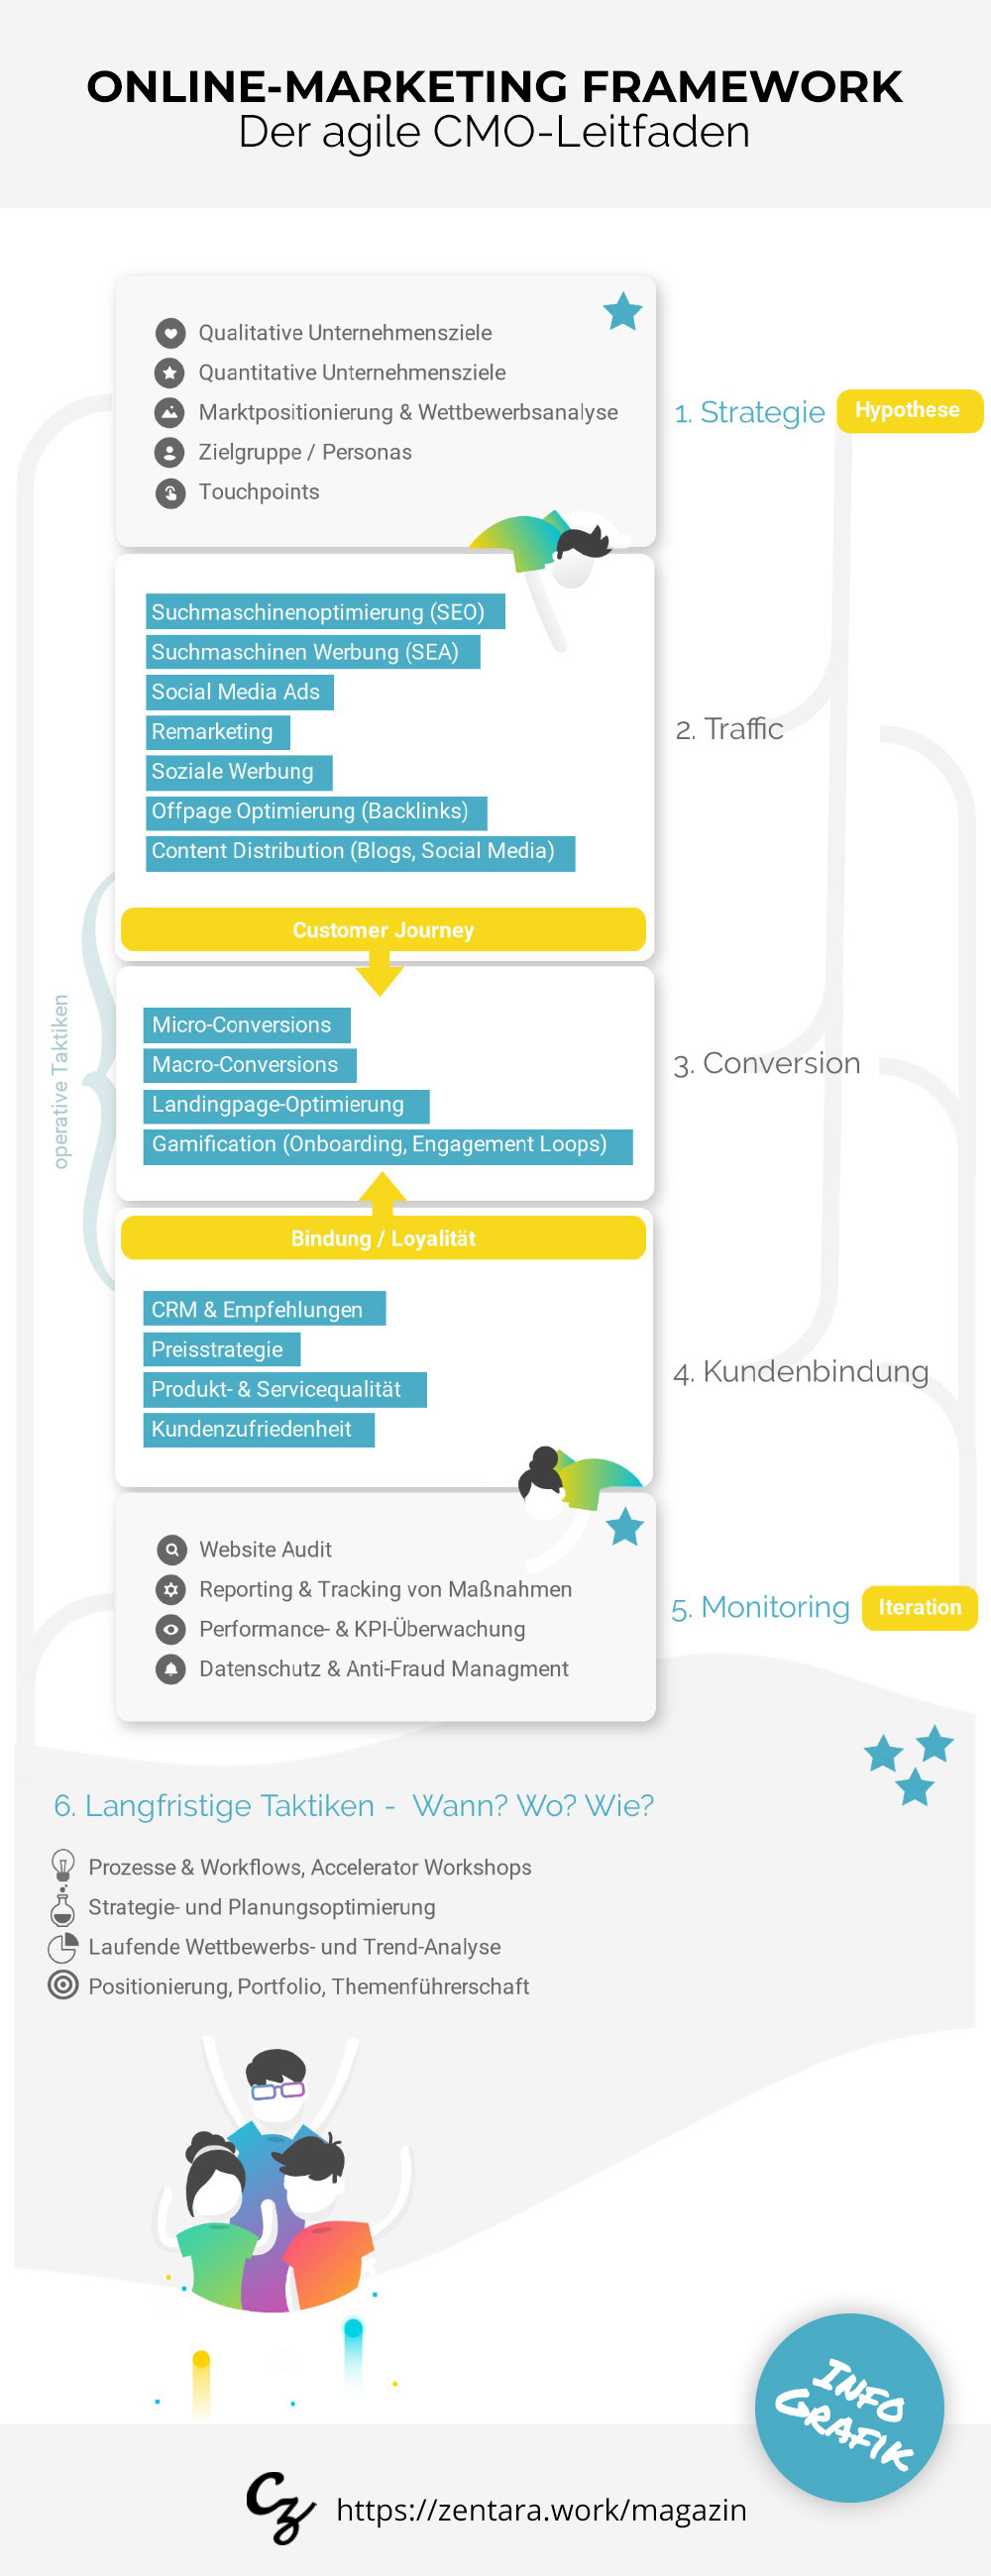 Online-Marketing Framework: Der agile CMO-Leitfaden [Infografik]